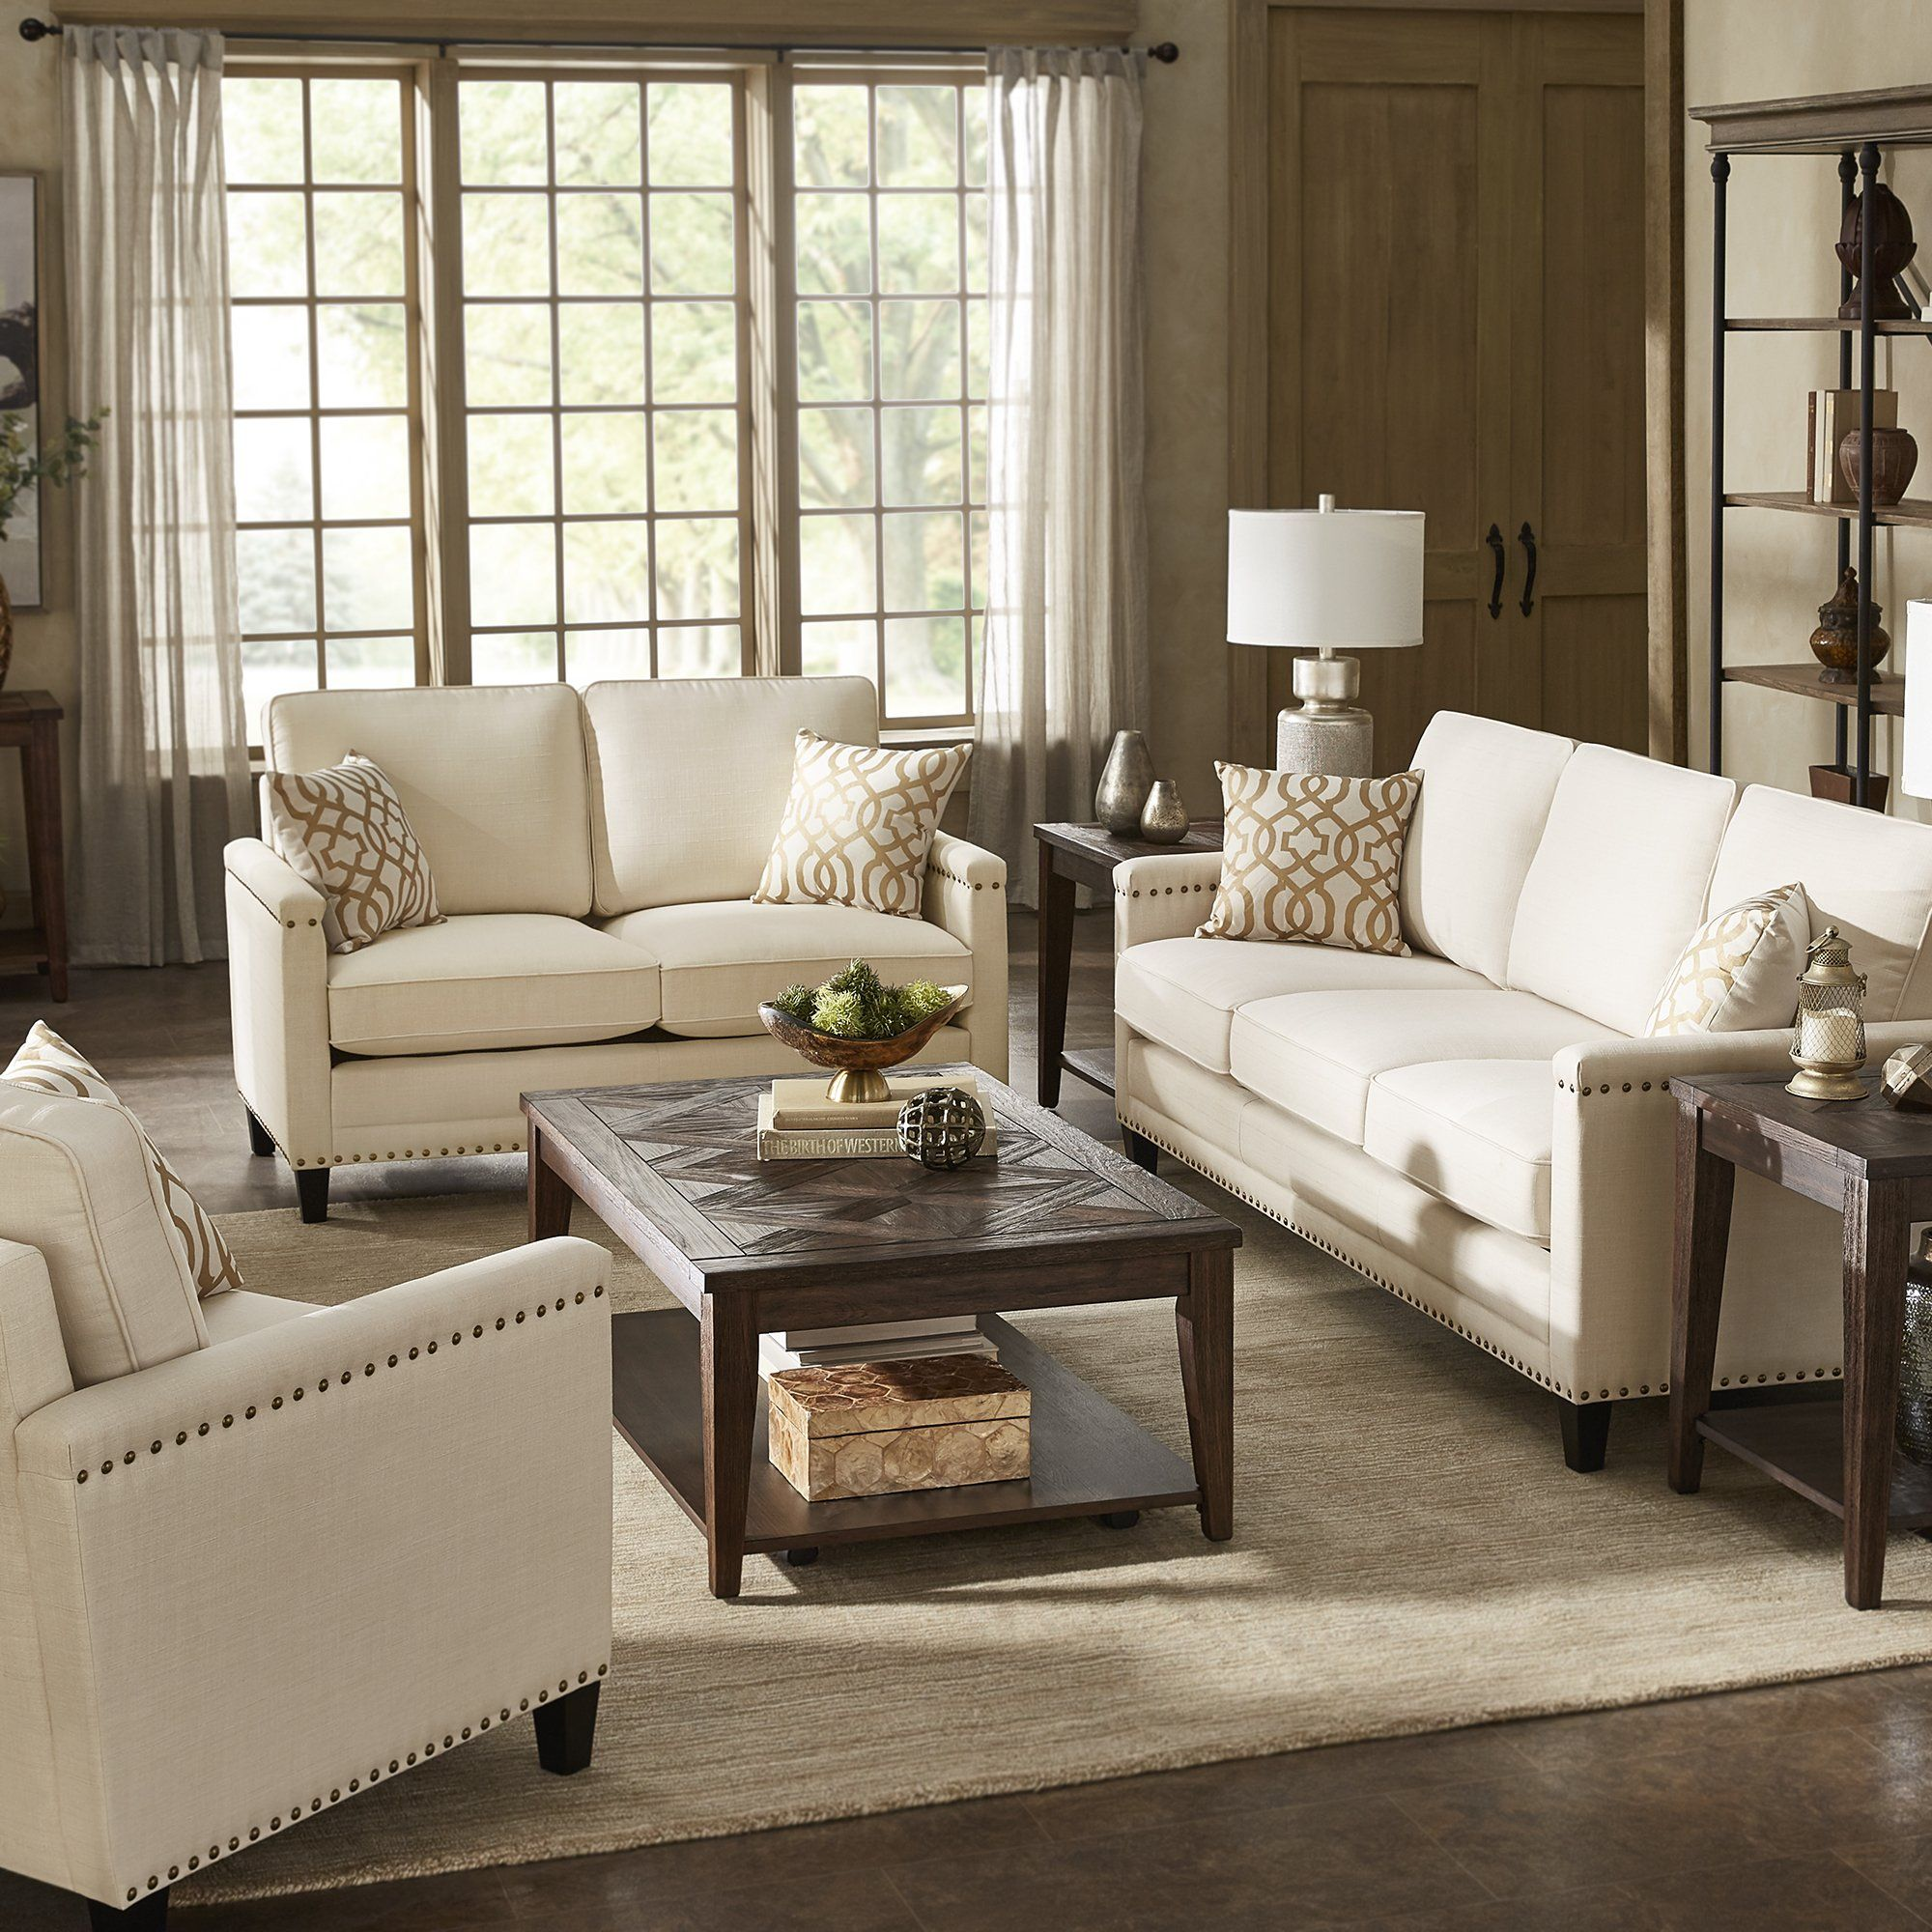 Stupendous Stoddard Ivory Fabric Seating With Nailhead Trim By Inspire Machost Co Dining Chair Design Ideas Machostcouk